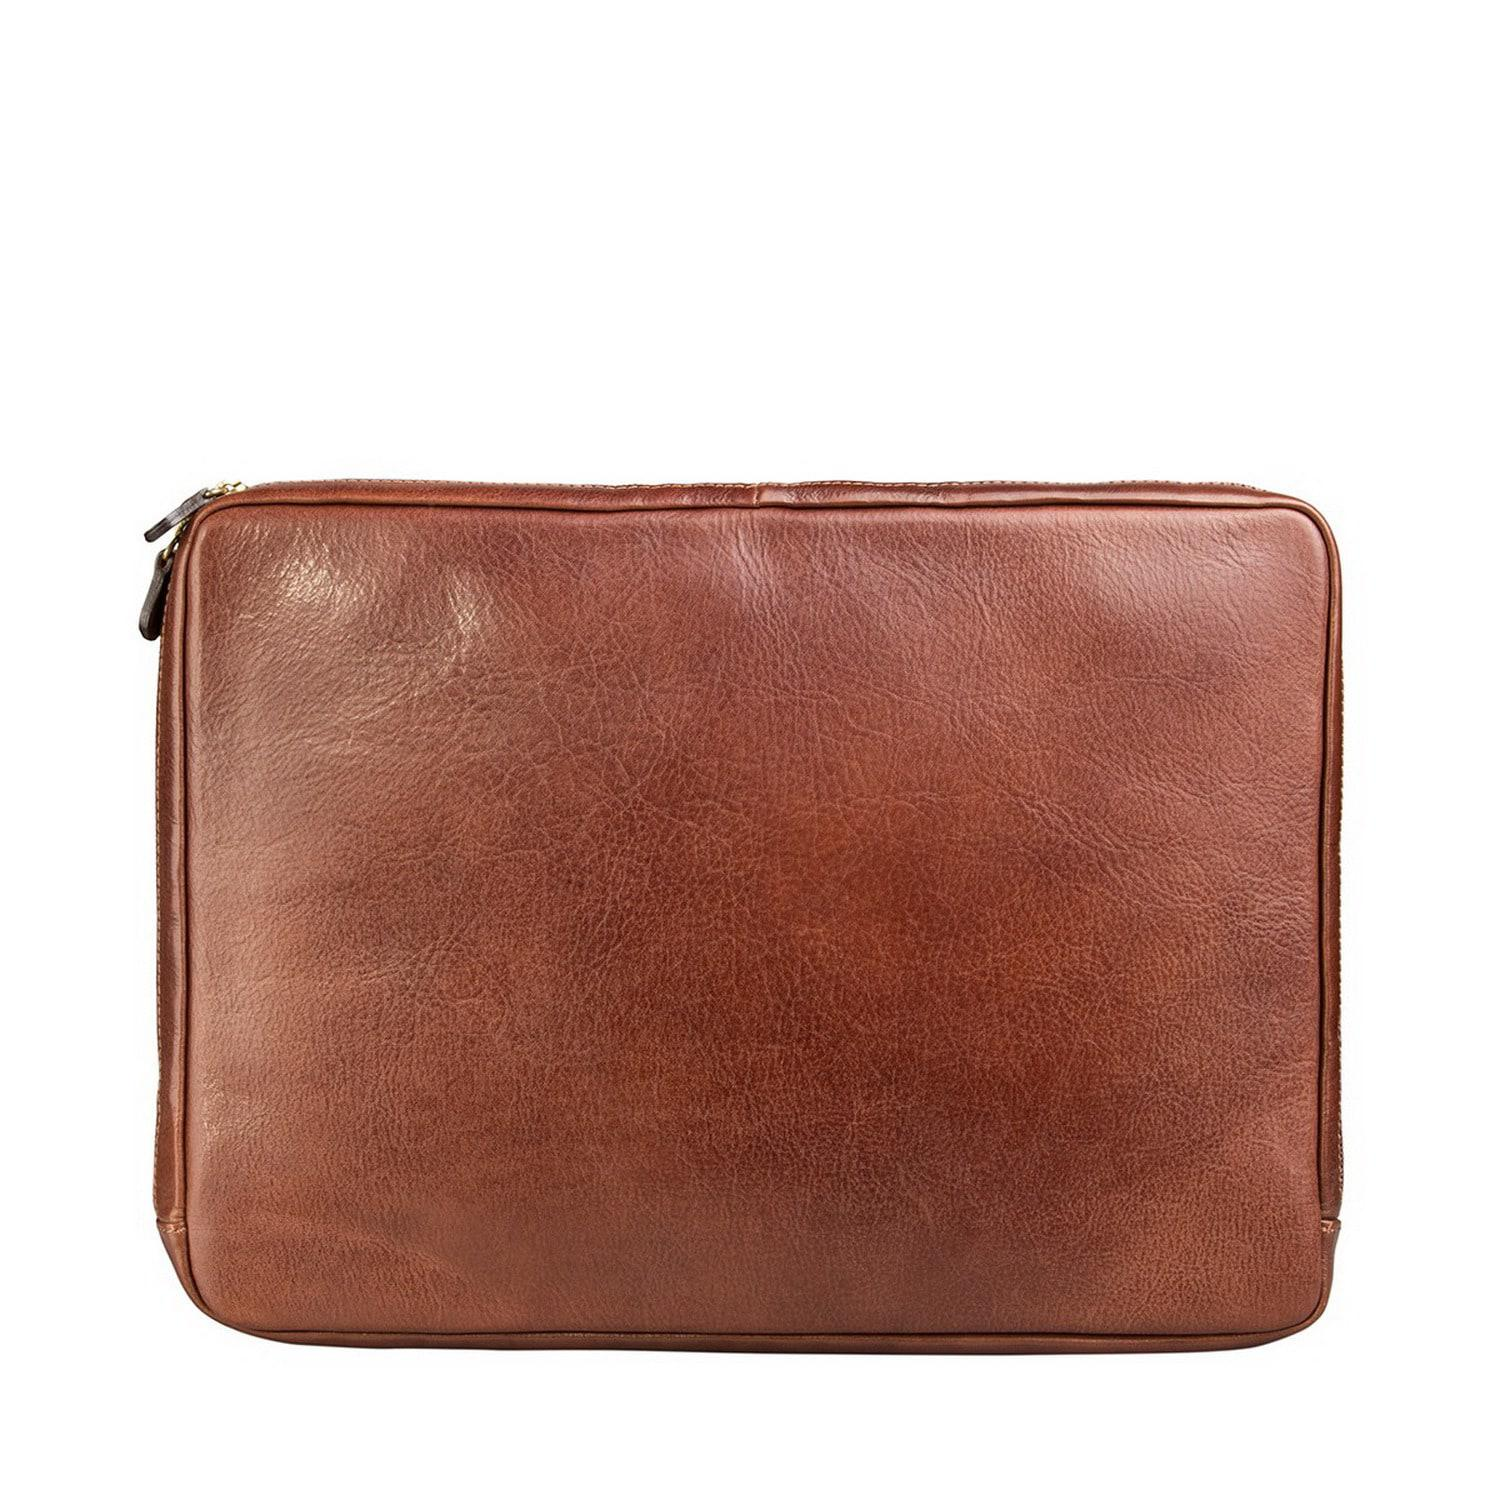 lyst maxwell scott bags luxury tan 14 inch laptop sleeve the bovino in brown for men. Black Bedroom Furniture Sets. Home Design Ideas